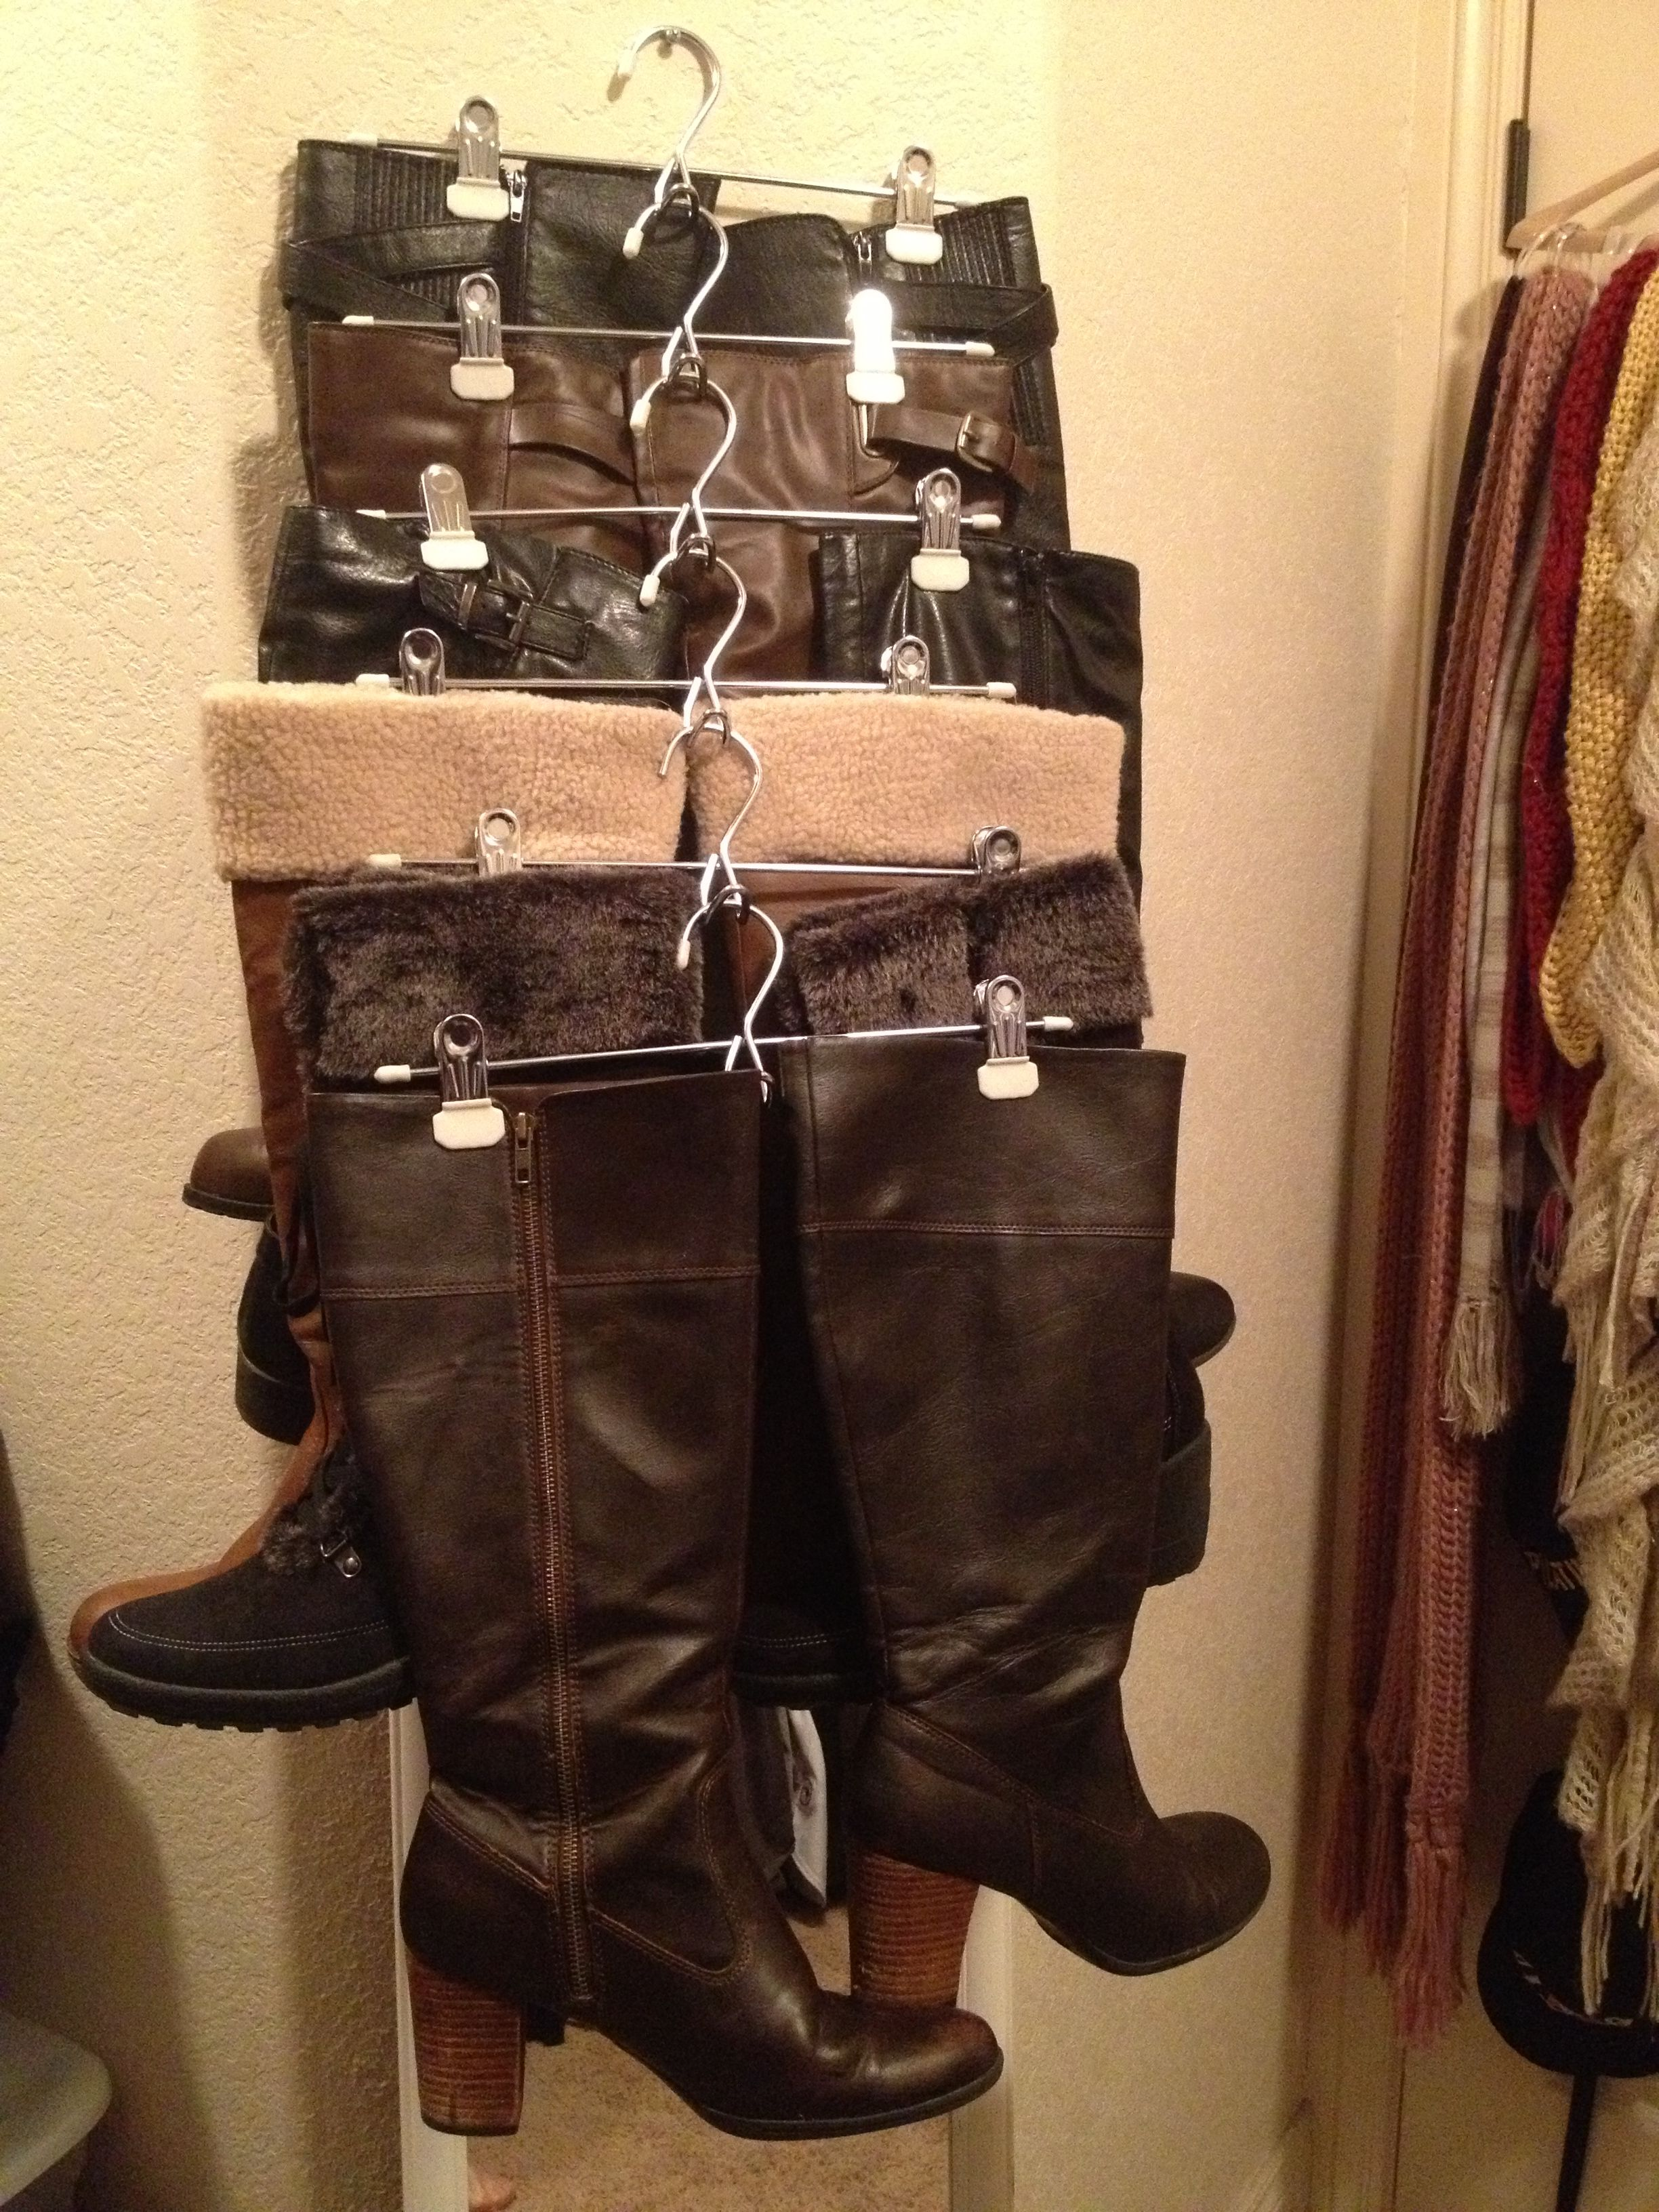 Amazing Great Way To Organize Your Long Boots In A Small Place! Did This And Now